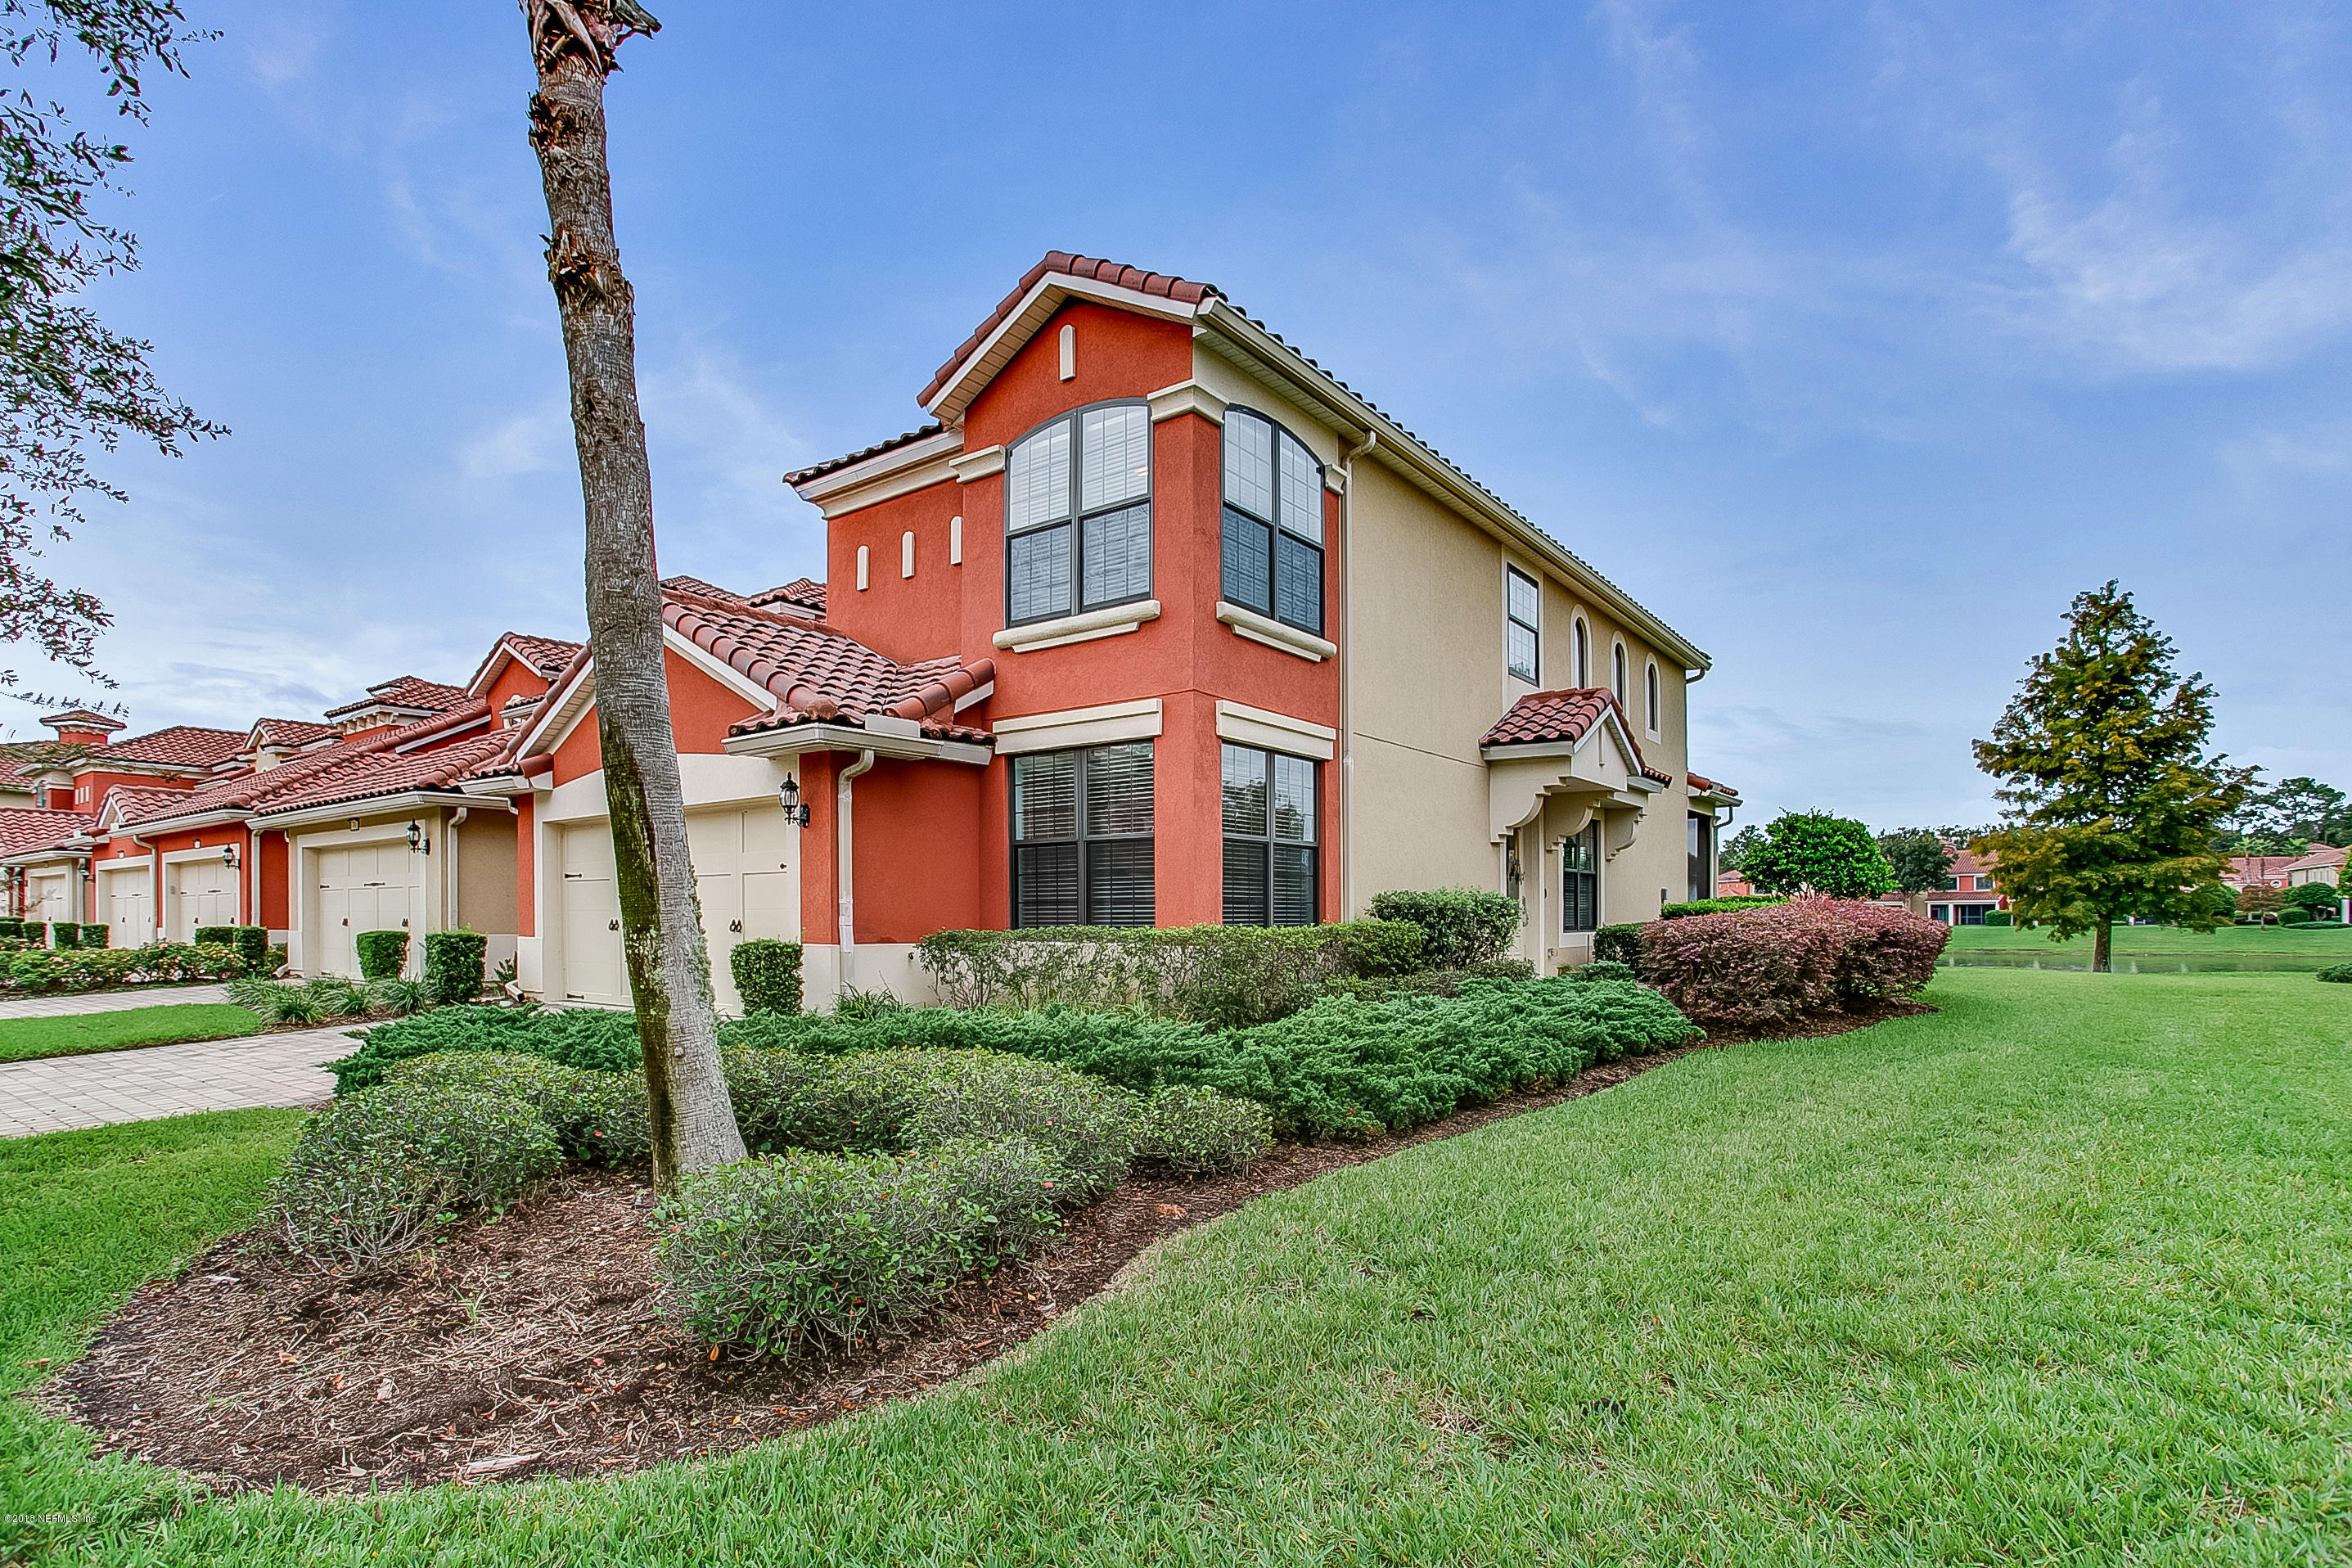 3700 CASITAS, JACKSONVILLE, FLORIDA 32224, 3 Bedrooms Bedrooms, ,2 BathroomsBathrooms,Residential - townhome,For sale,CASITAS,964623